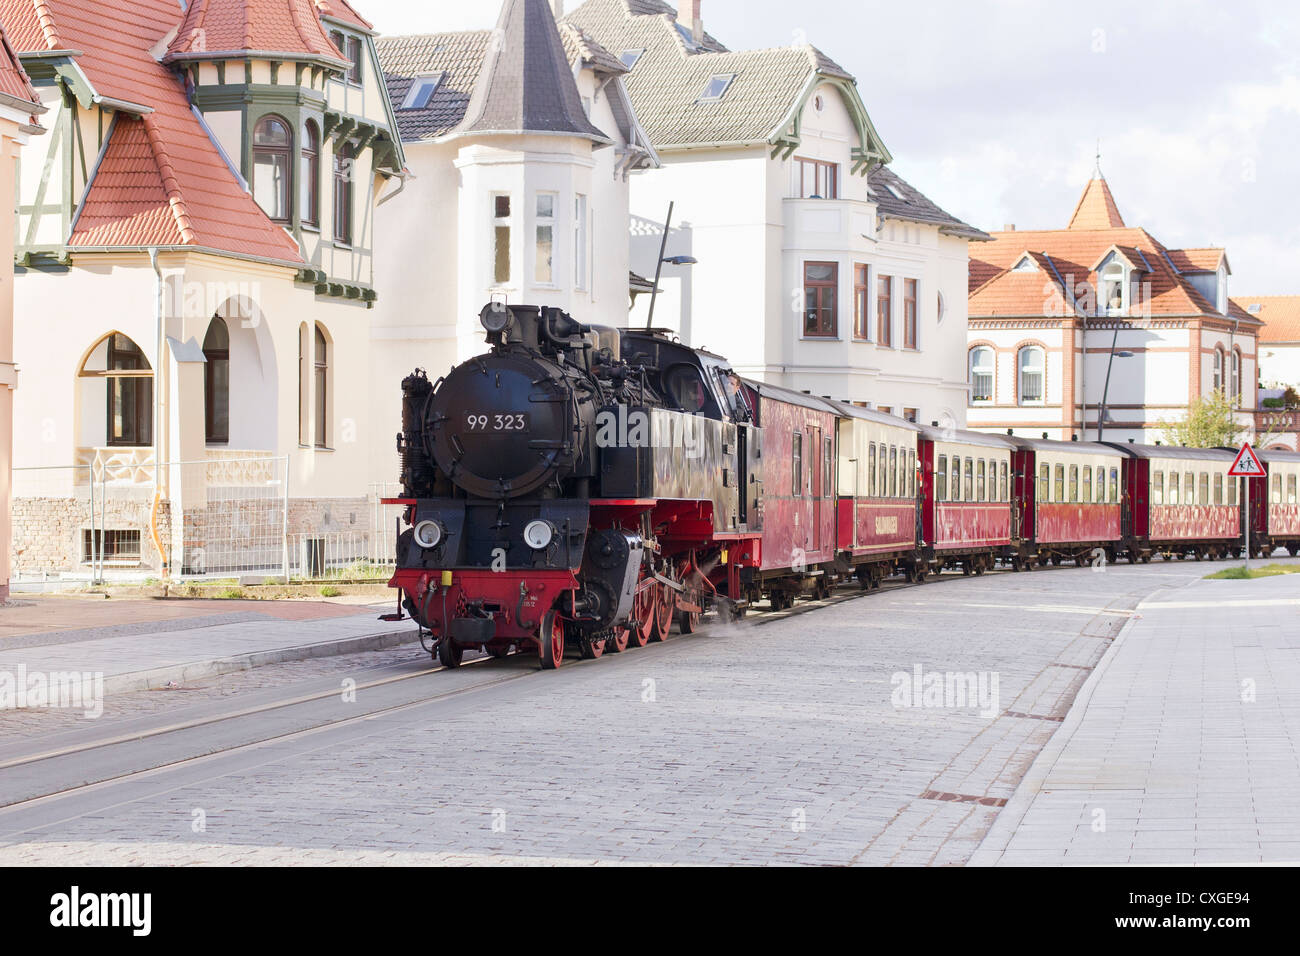 steam locomotive pulling a passenger train the molli bahn at bad stock photo 50764256 alamy. Black Bedroom Furniture Sets. Home Design Ideas